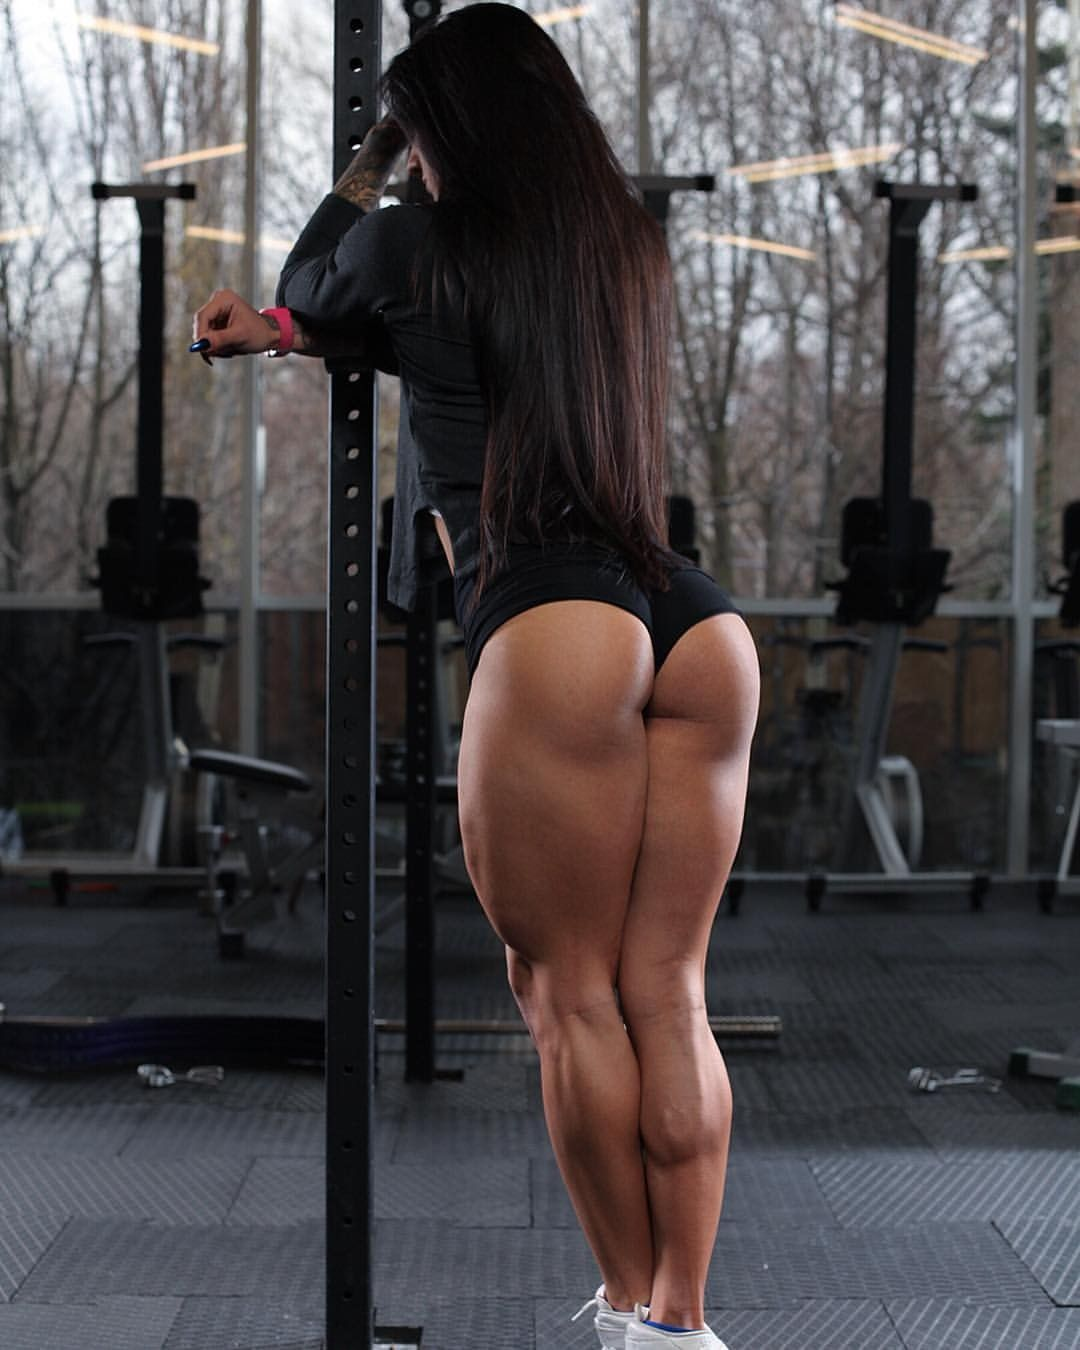 Image Ass Buttocks Fitness Female Barbell